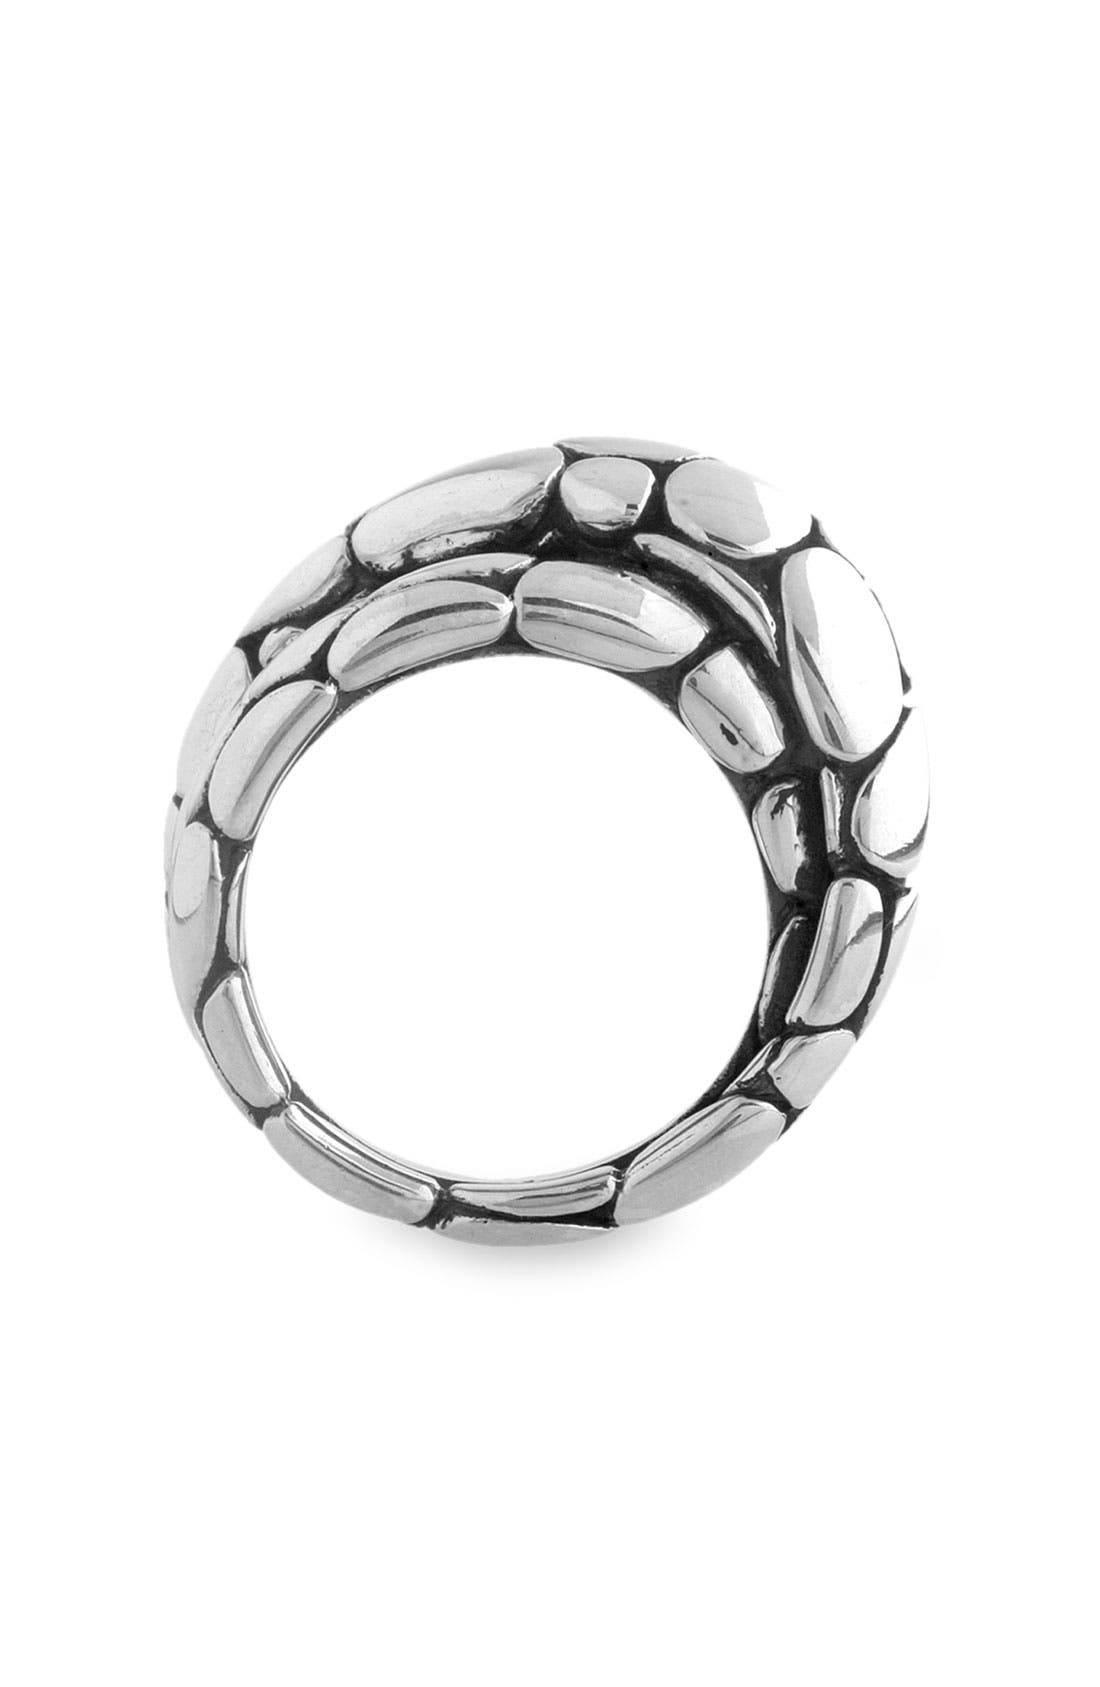 'Kali' Silver Twist Ring,                             Alternate thumbnail 3, color,                             SIL